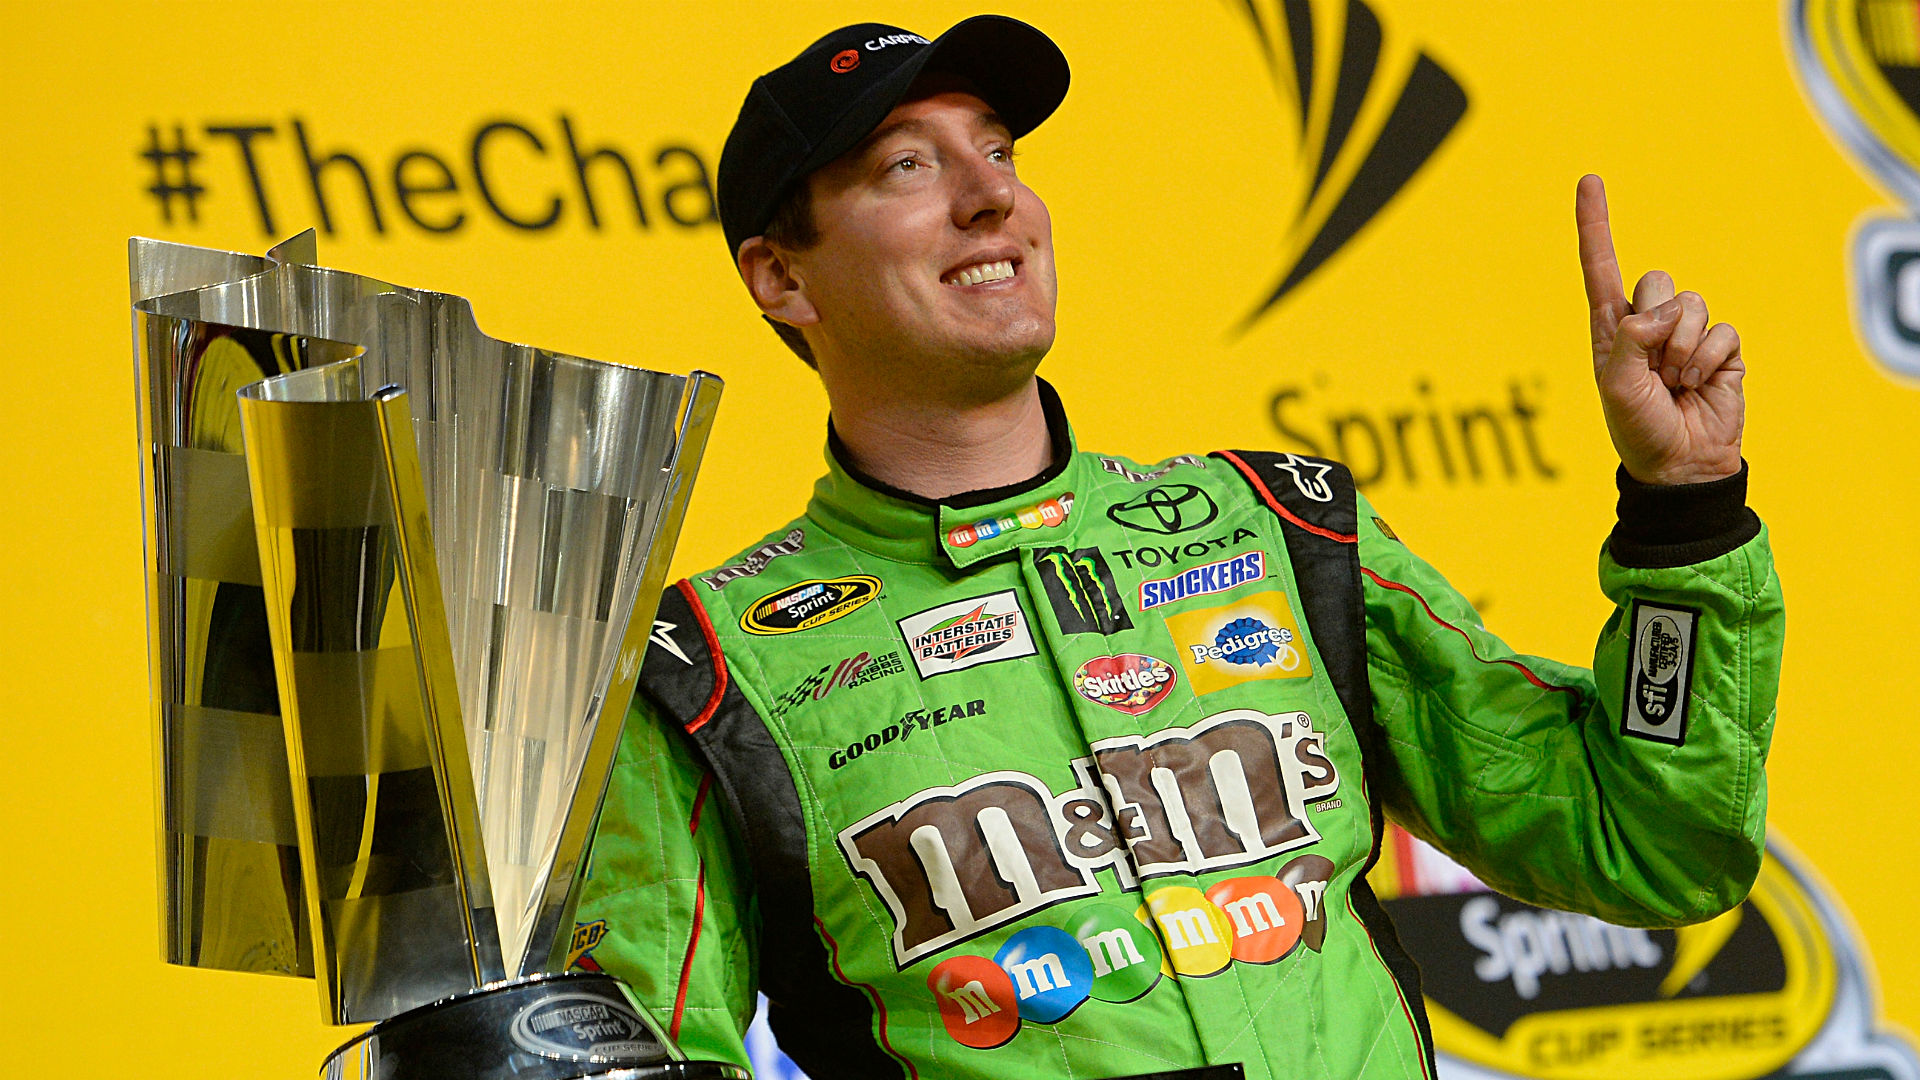 http://images.performgroup.com/di/library/sporting_news/fa/22/kyle-busch-120415-getty-ftrjpg_1qz9lau81dg05123ane8o6m1dr.jpg?t=1808633073